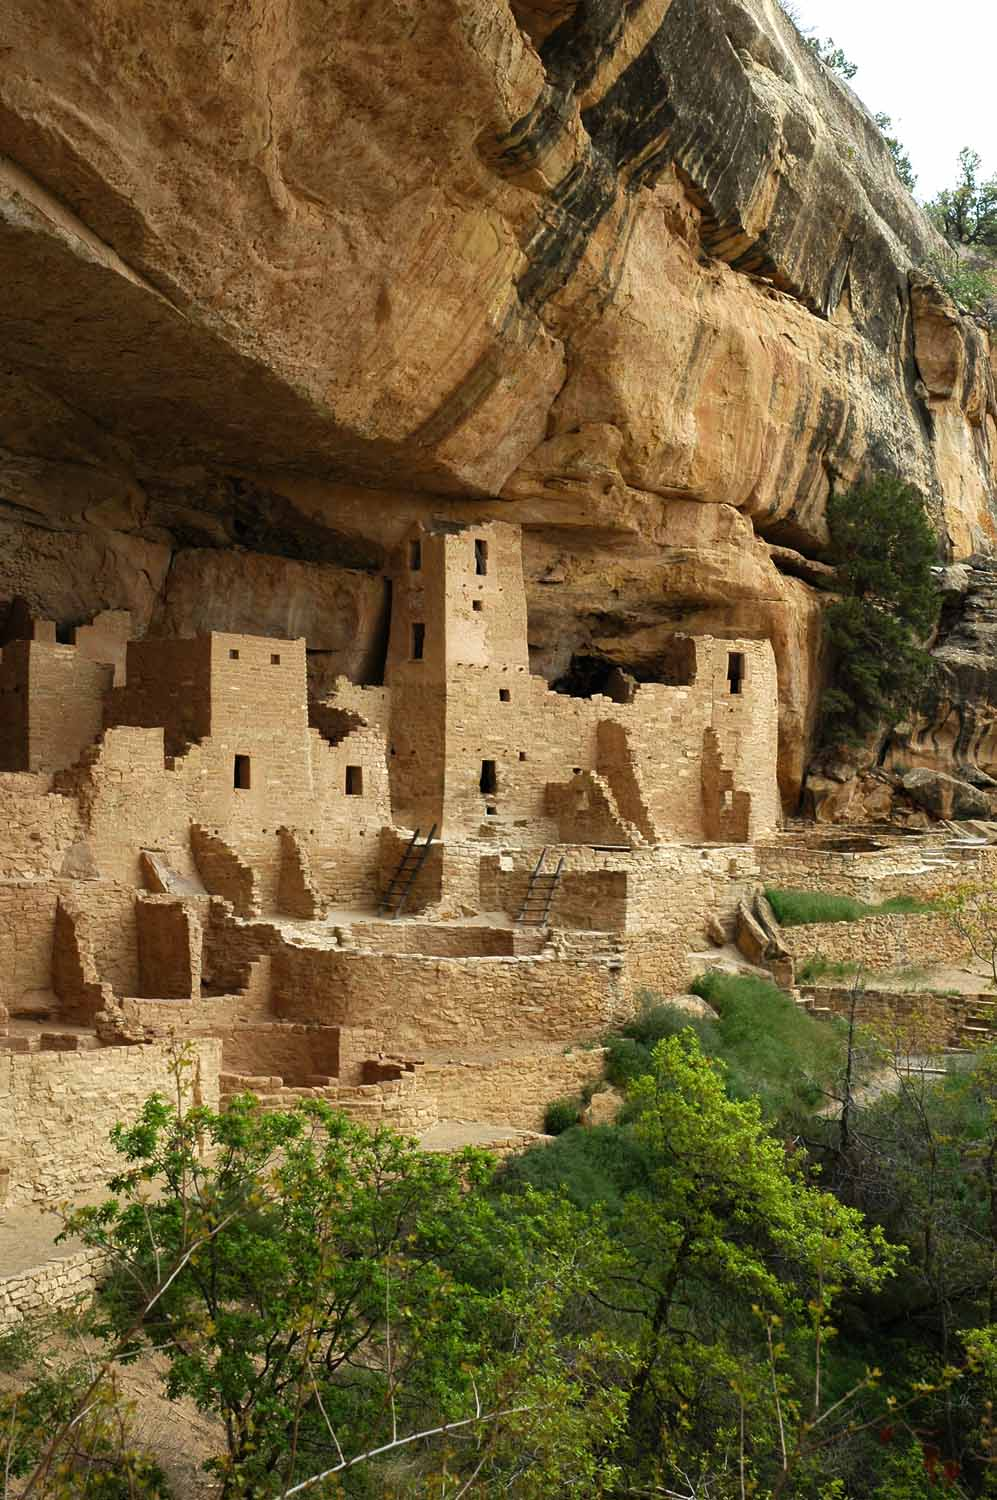 The design draws inspiration from the Anasazi cliff dwellings' typical strategy of backing into a cliff face and gently cupping the sun exposure. The cliff overhang provides shade  in summer and allows sun penetration in winter.